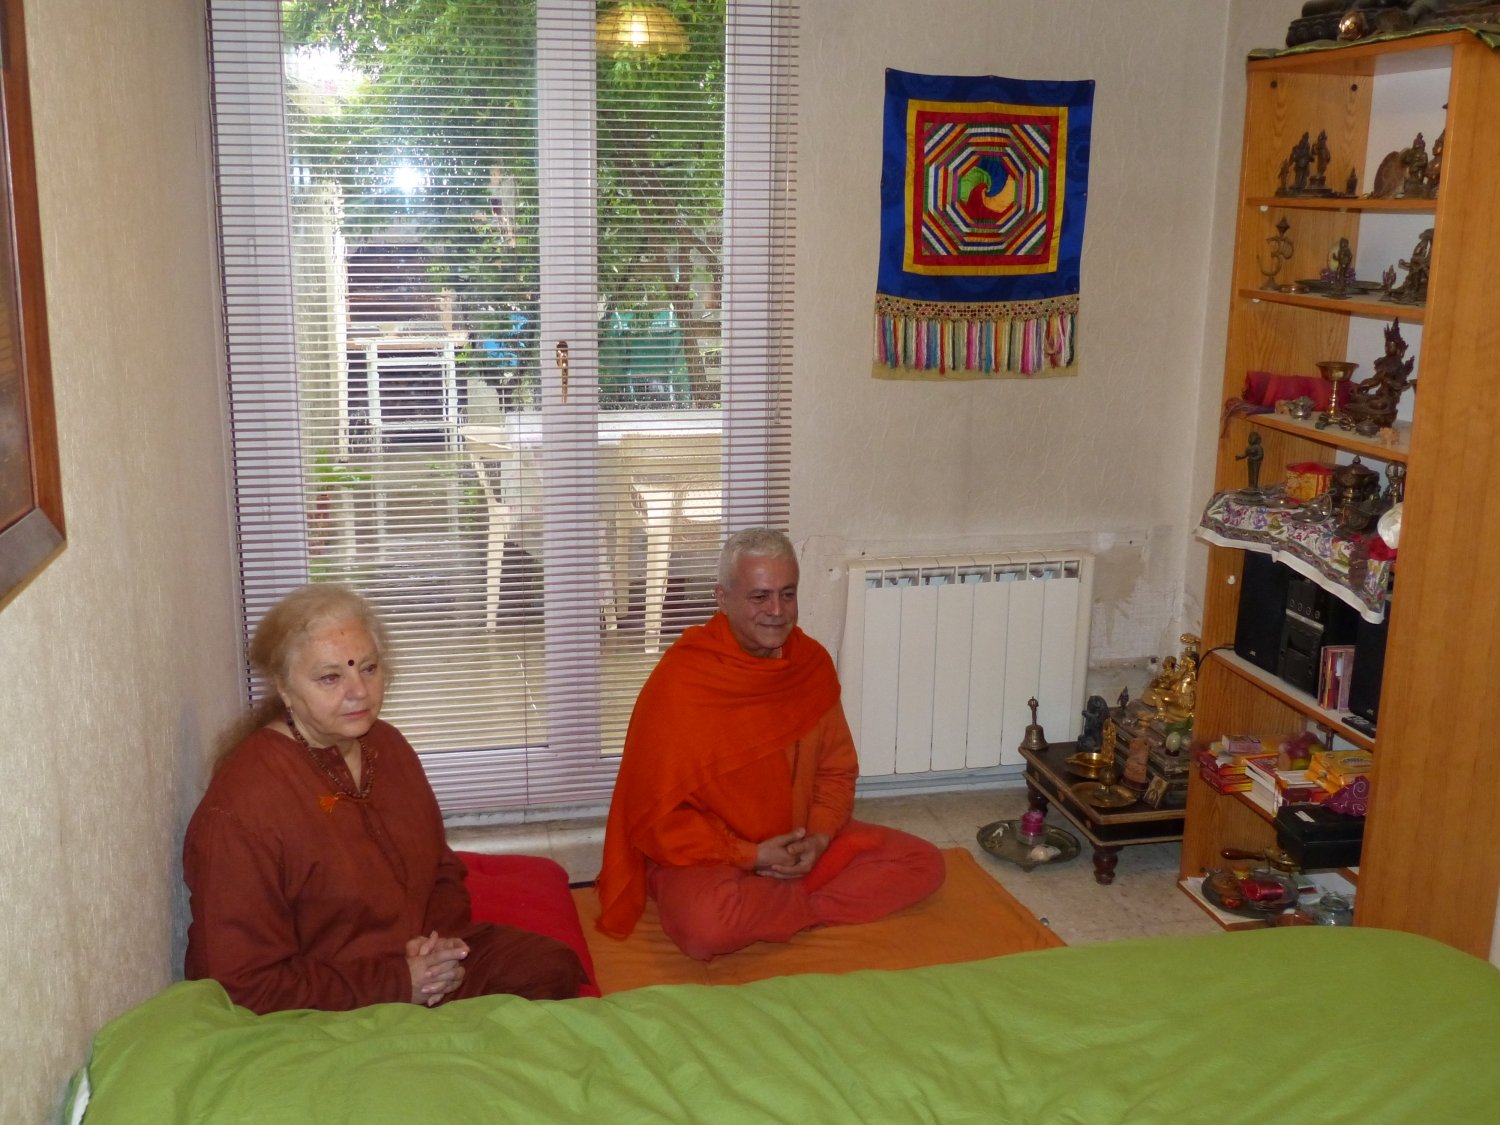 Meeting of H.H. Jagat Guru Amrta Sūryānanda Mahā Rāja with Tara Michaël - Arles, Provence - 2013, May